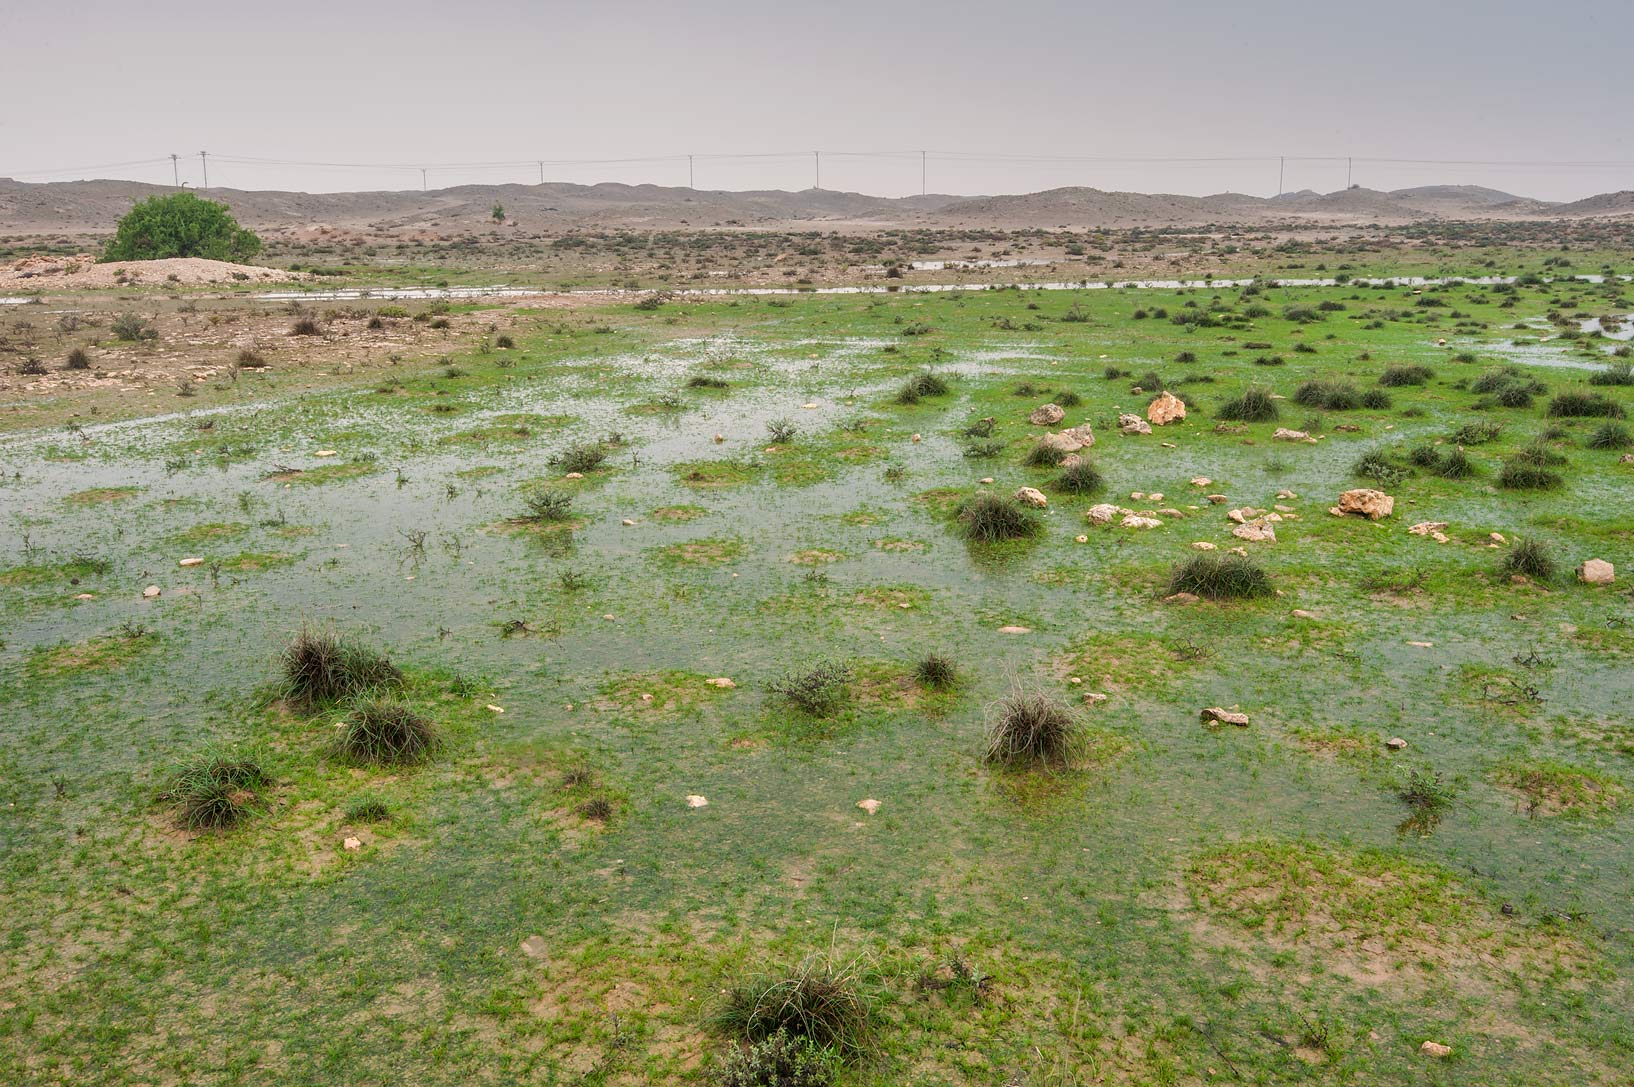 Wet depression near Jabal Al Jassasiya, on north-eastern coast. Qatar